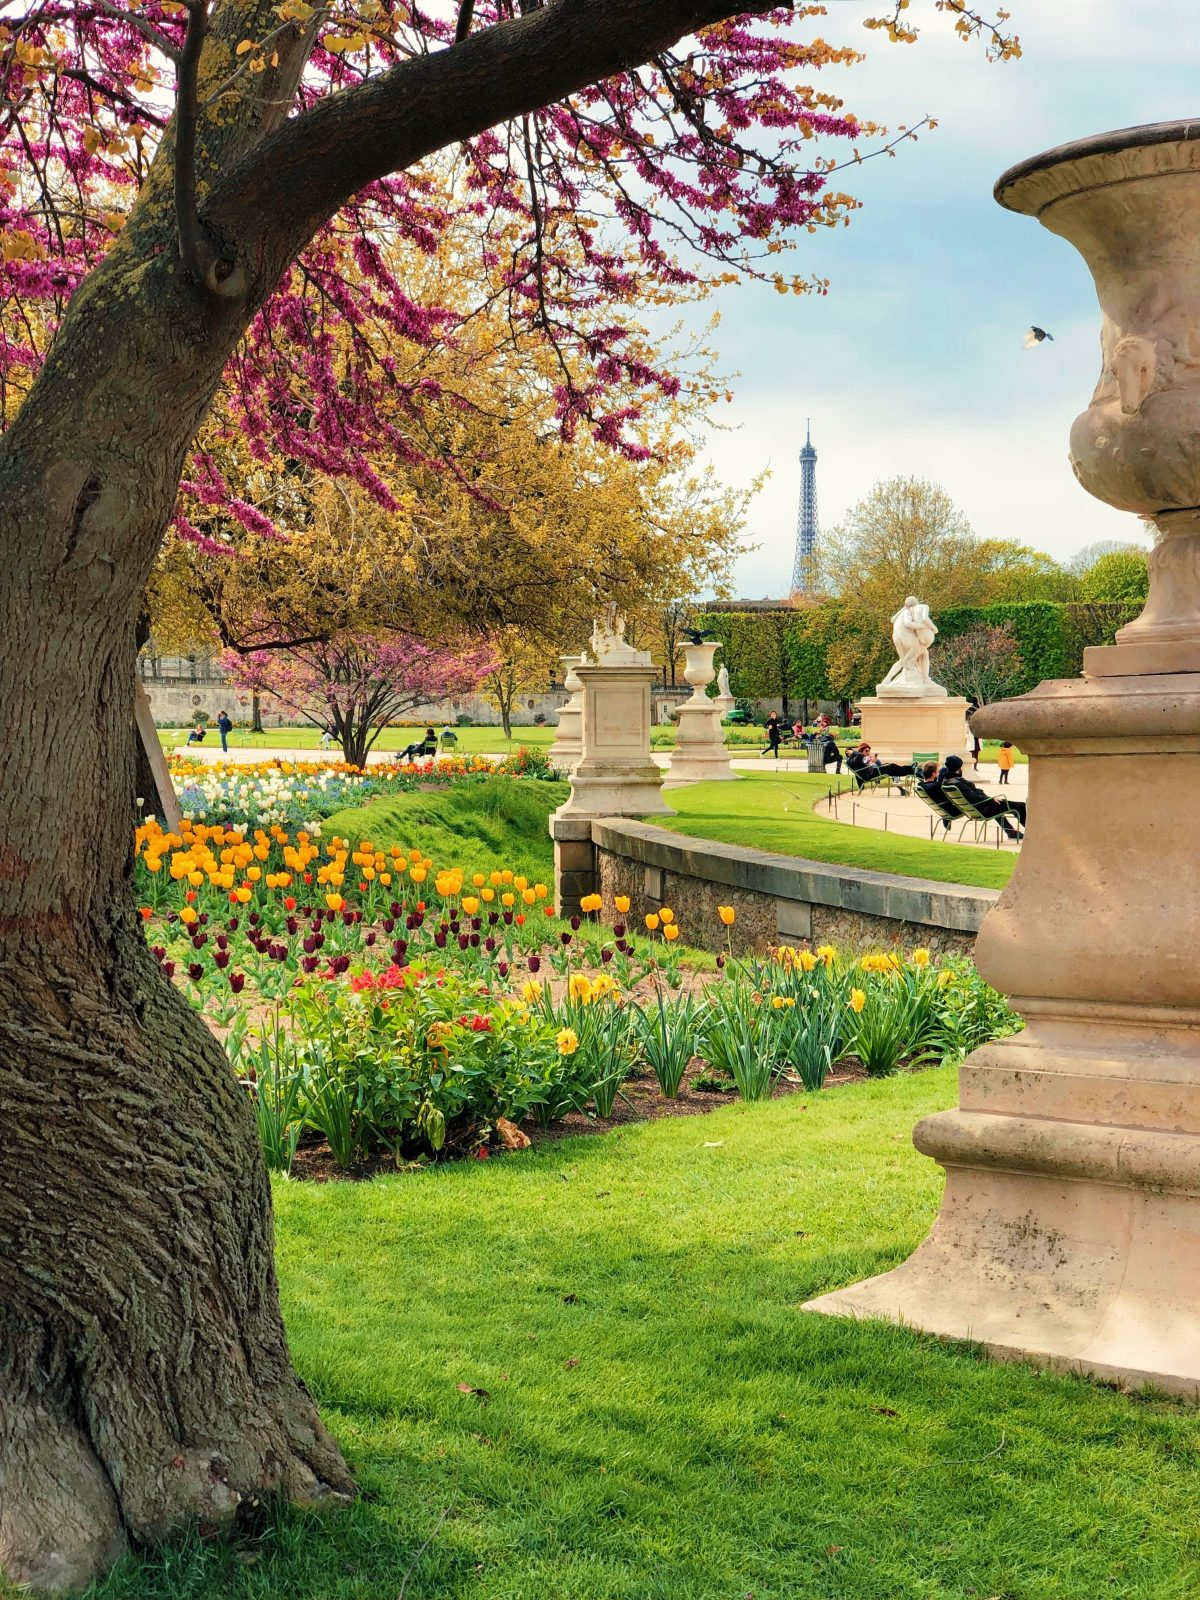 A beautiful day at the park with a sculpture and flowers in view